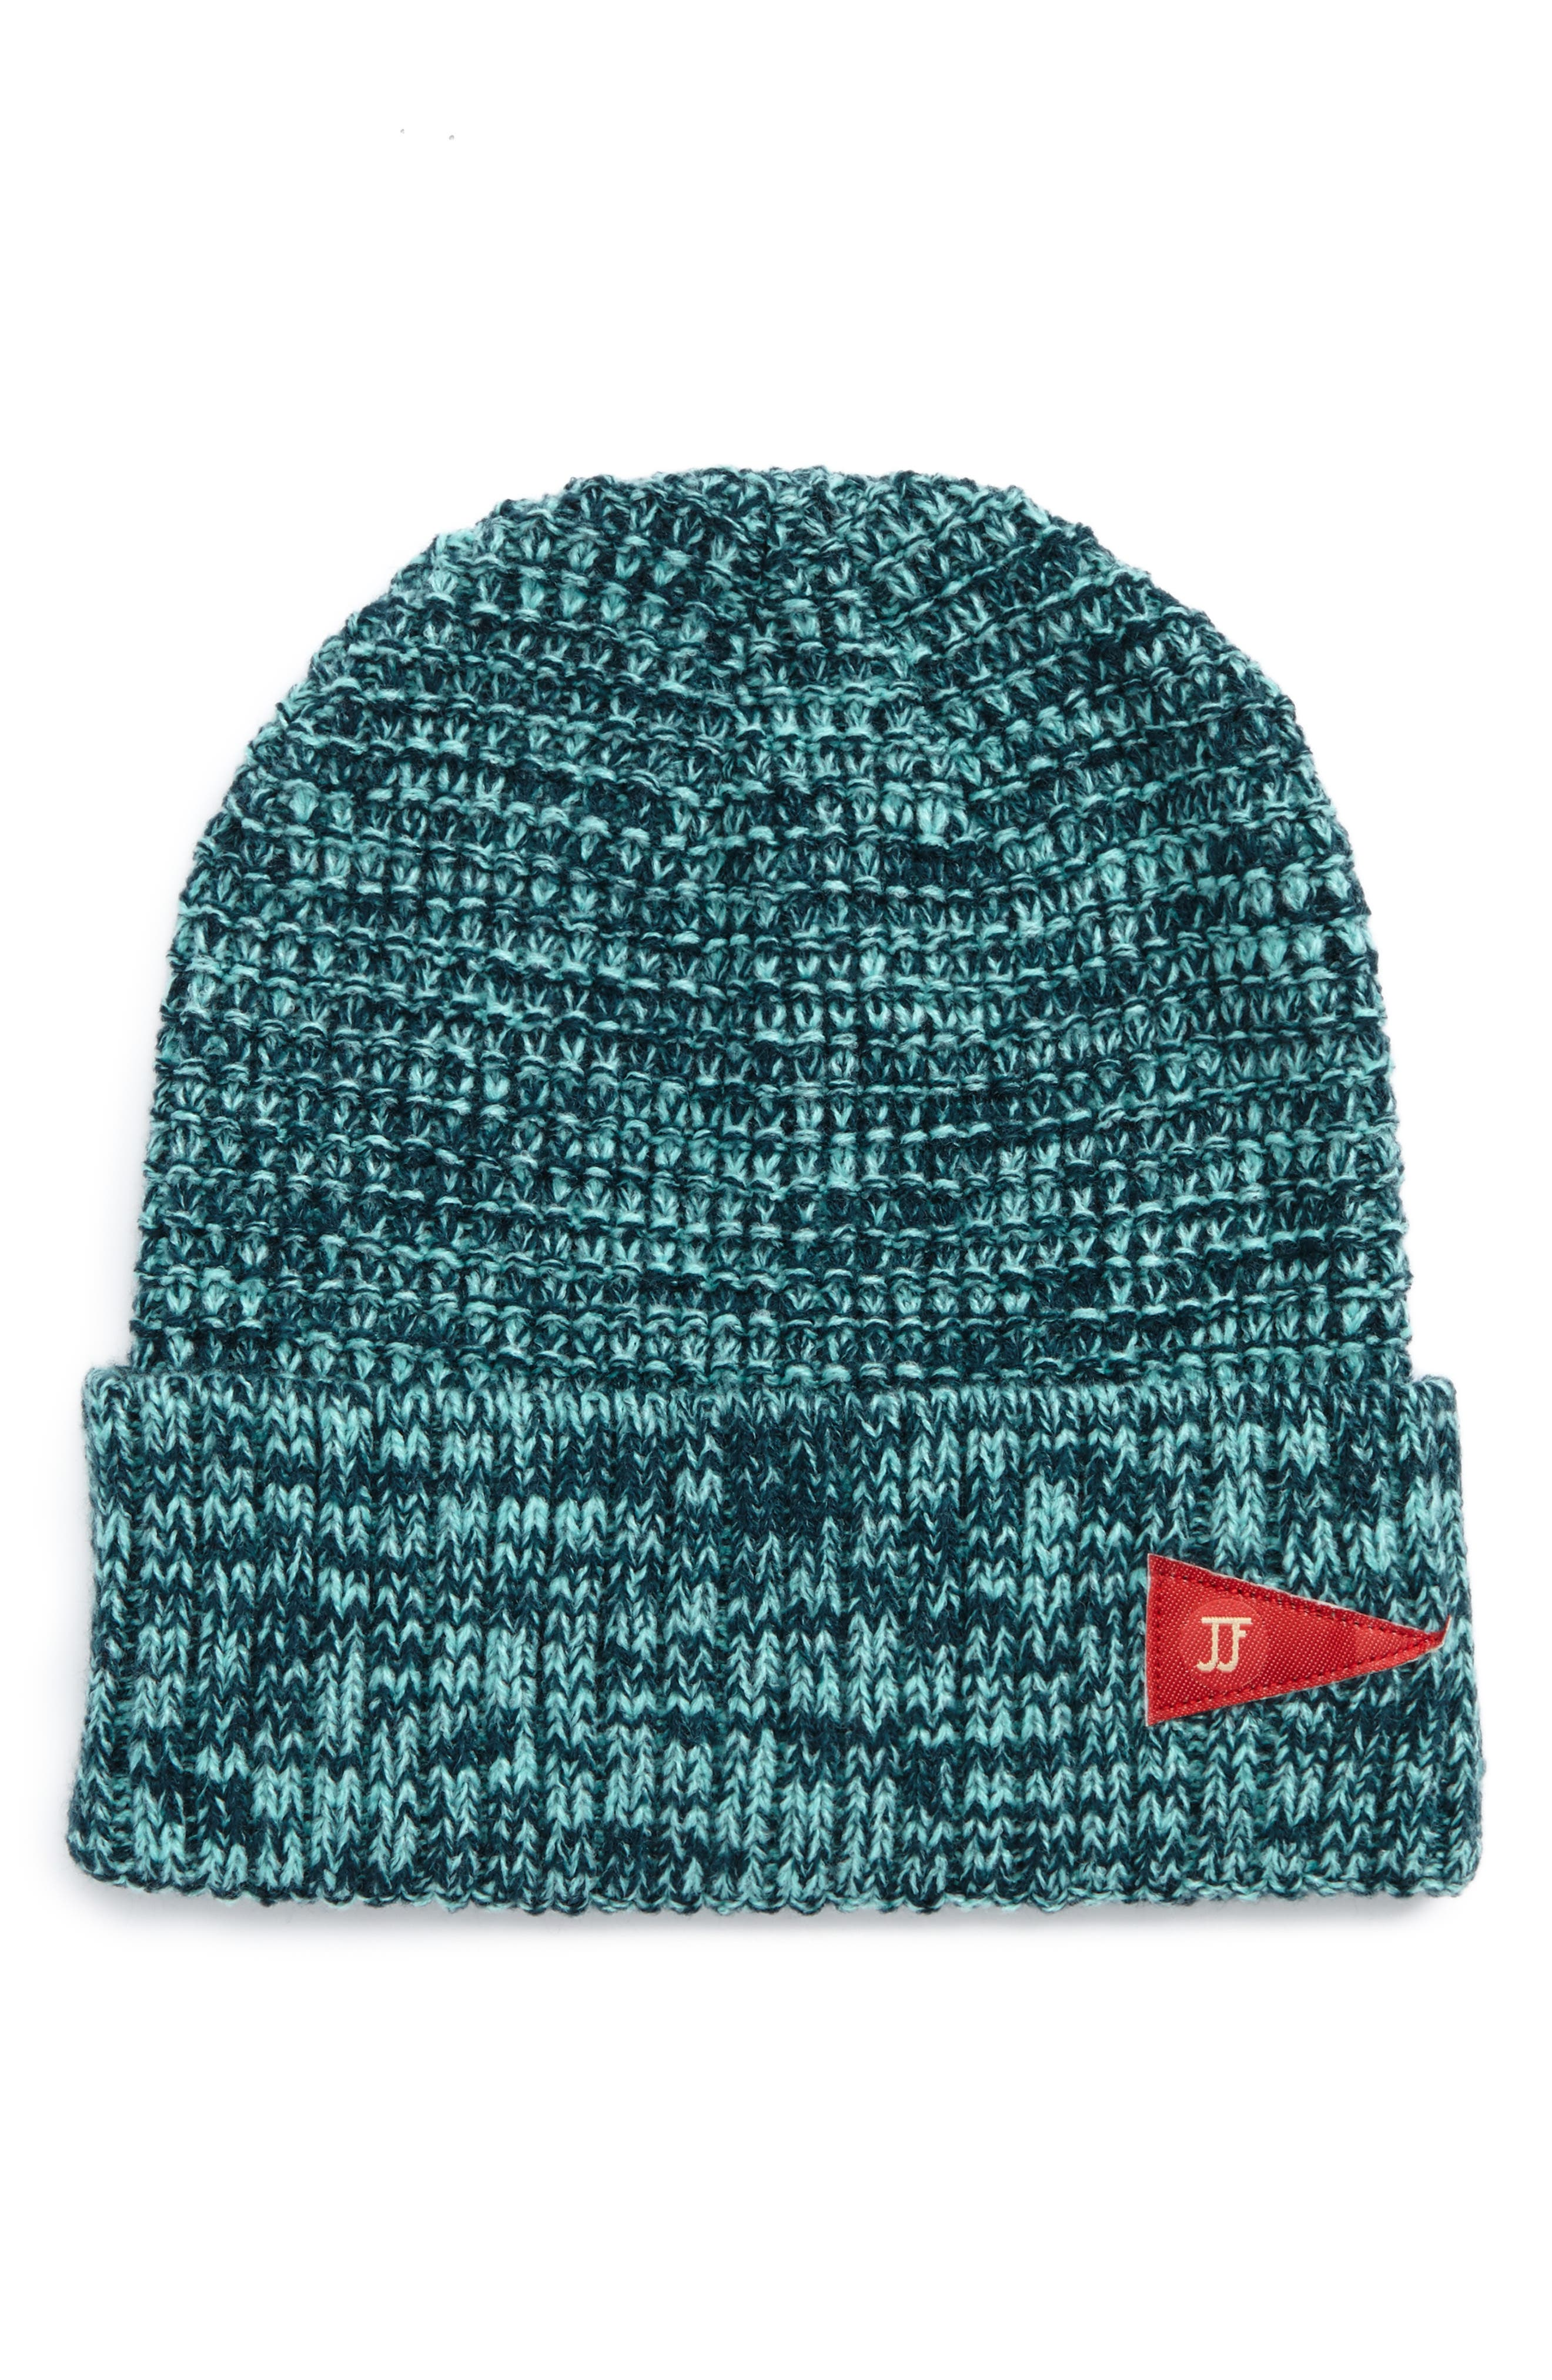 Hurley Jacare Knit Cap